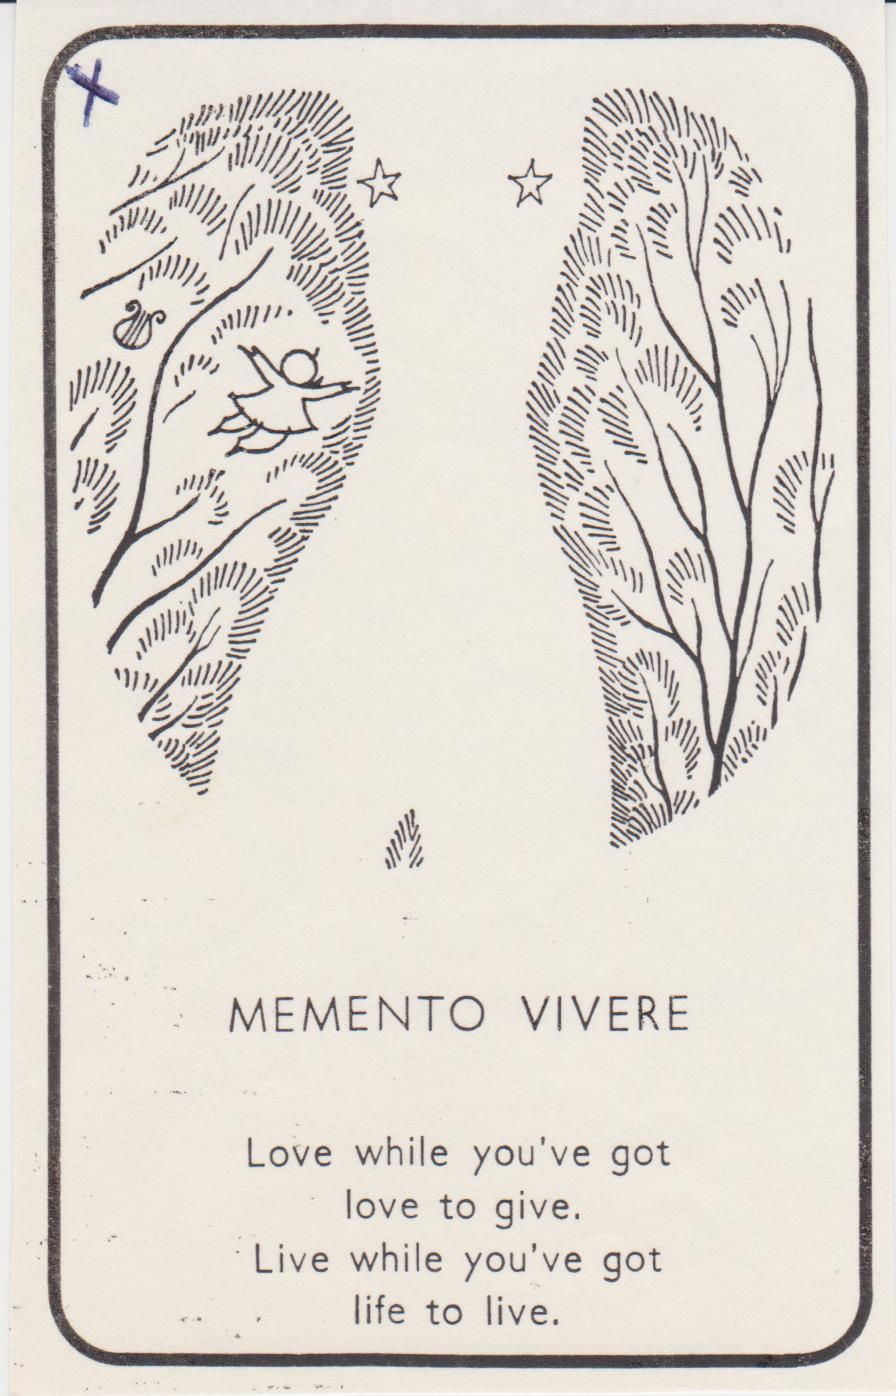 Piet Hein...Memento Vivere is Latin meaning 'Remember To